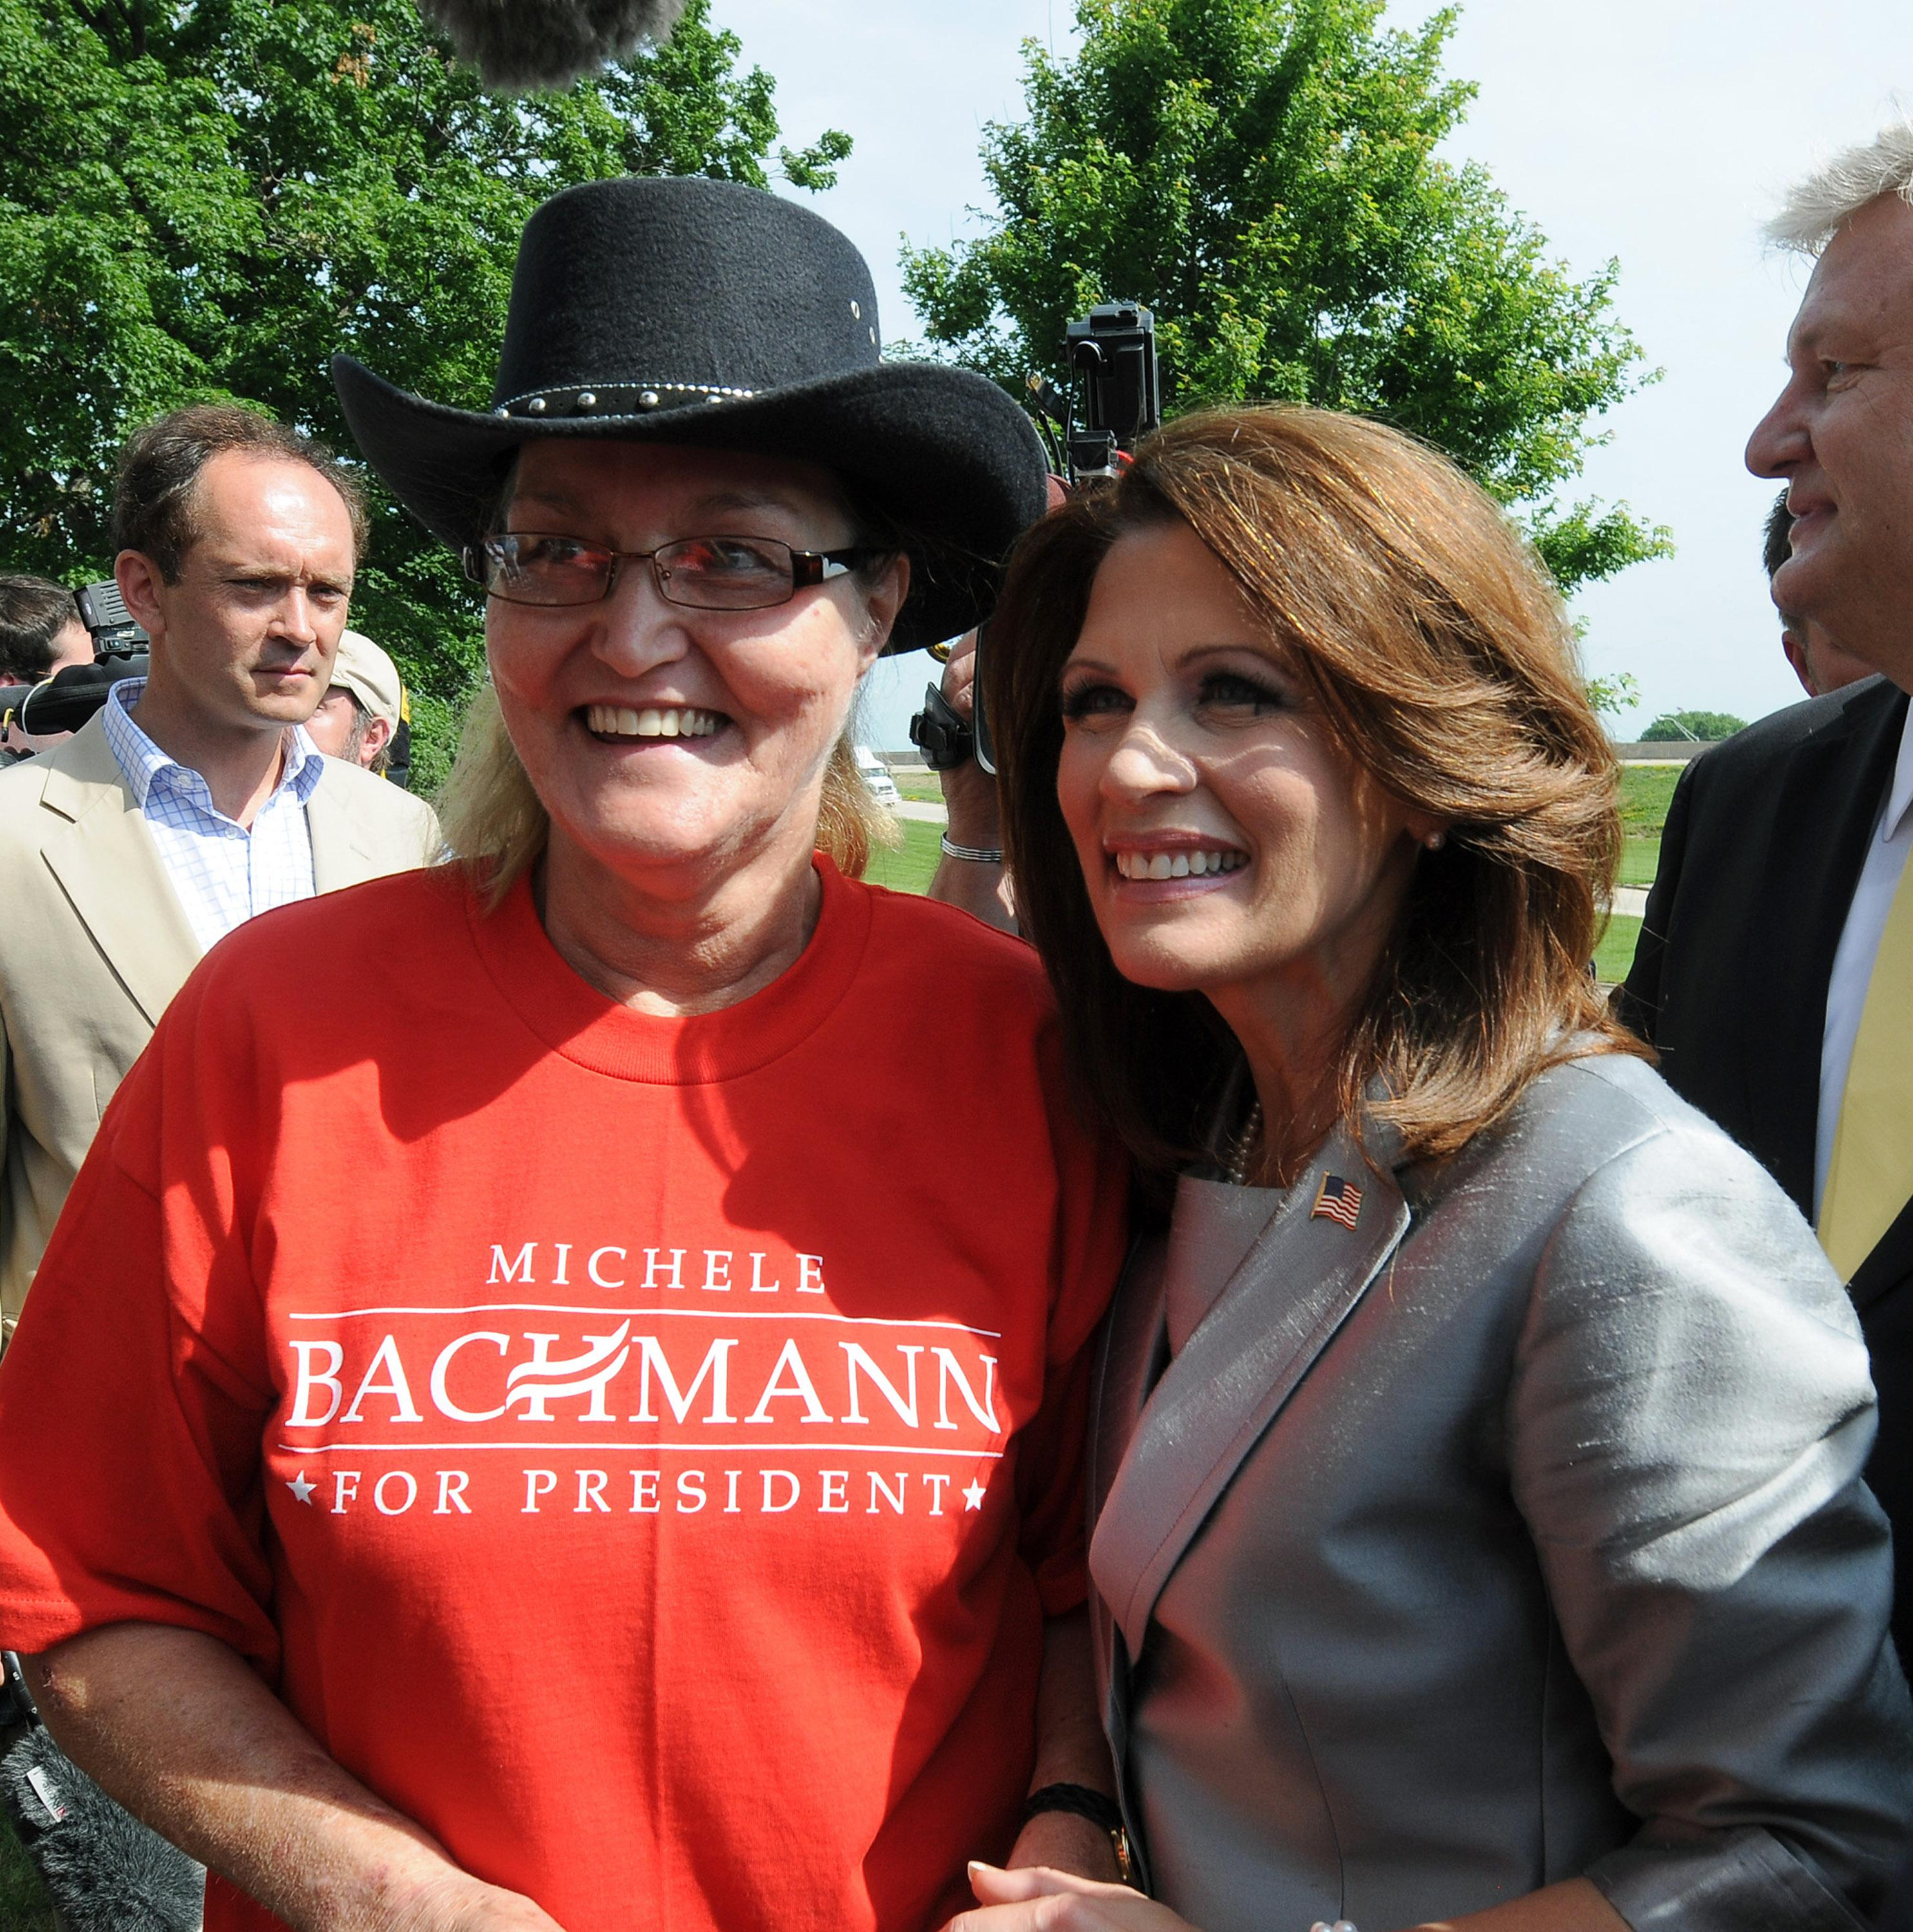 Photograph of Michele Bachmann by Steve Pope/Getty Images.